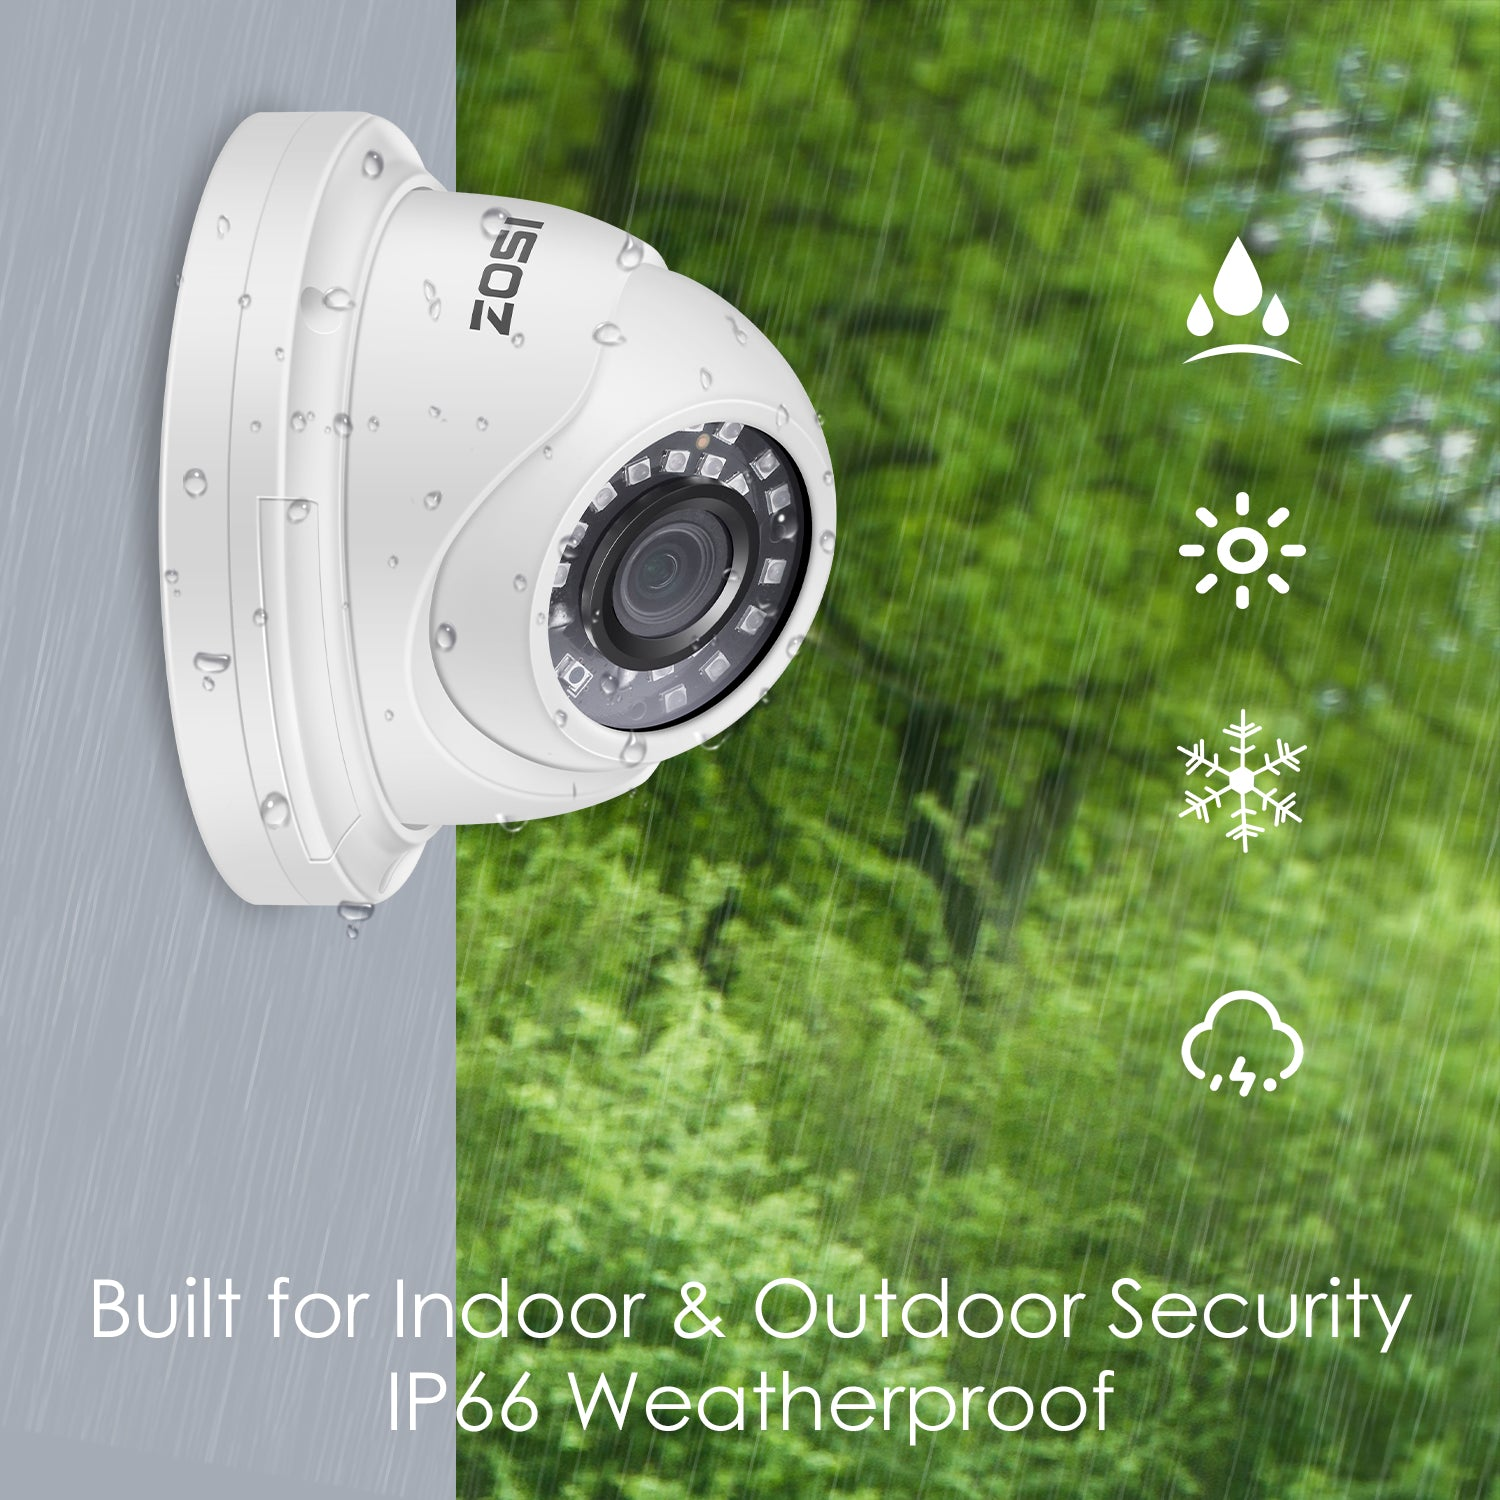 Add-on Camera, 4PCS 5MP Dome Camera, 80ft Infrared Night Vision, Only for ZOSI PoE Security